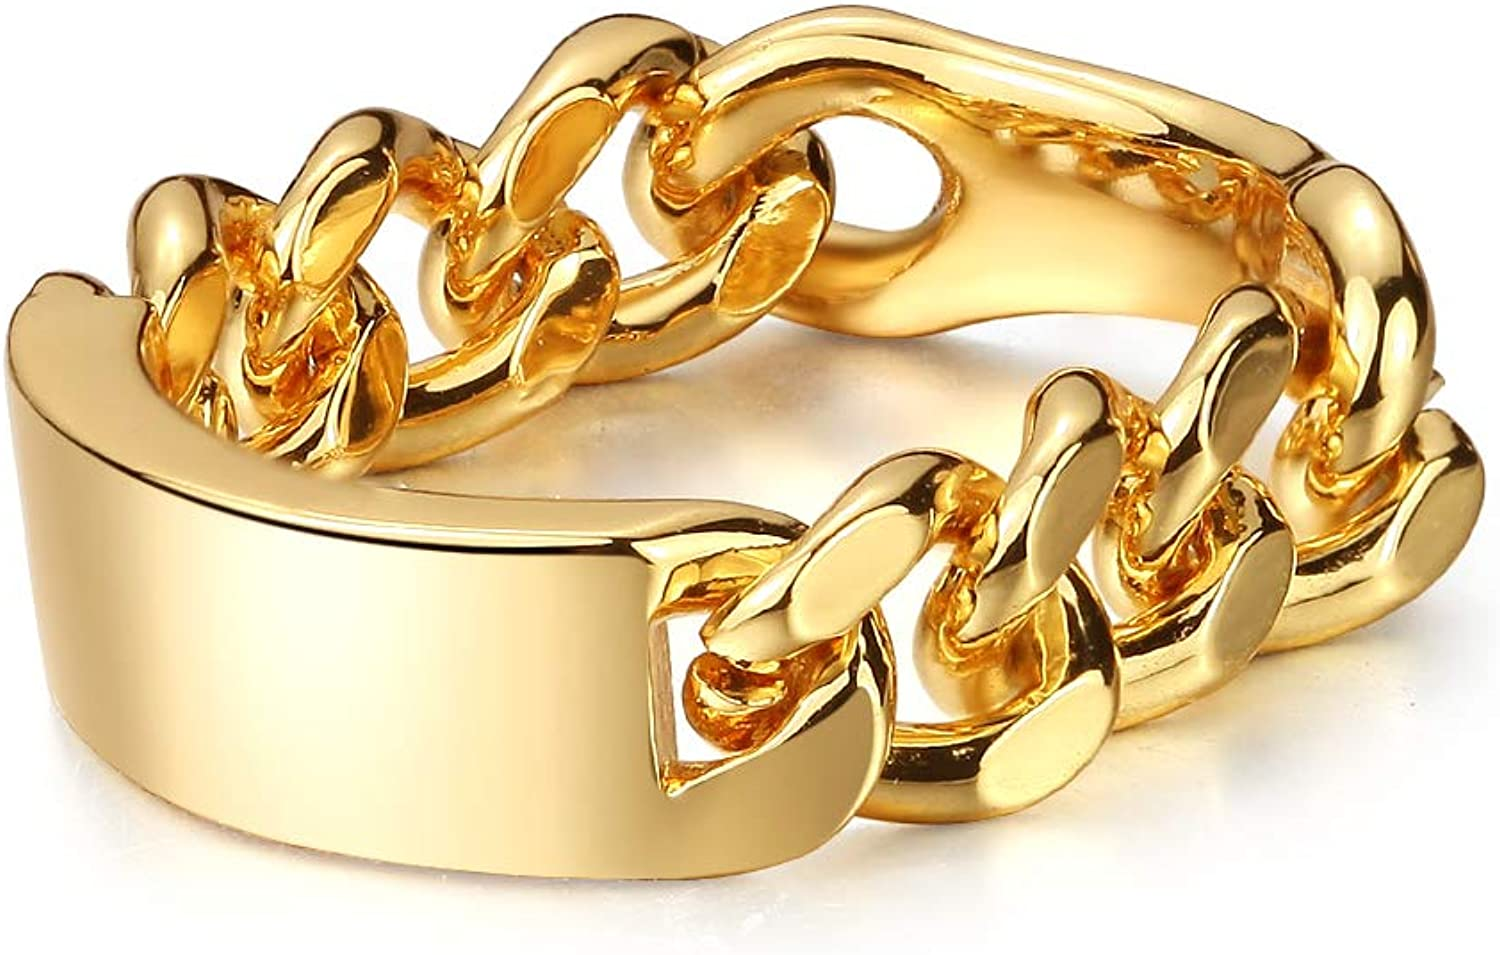 Minimal Gold Signet Rings for Women Wide Chunky Stackable Statement Chain Band 18k Gold-Plated Brass